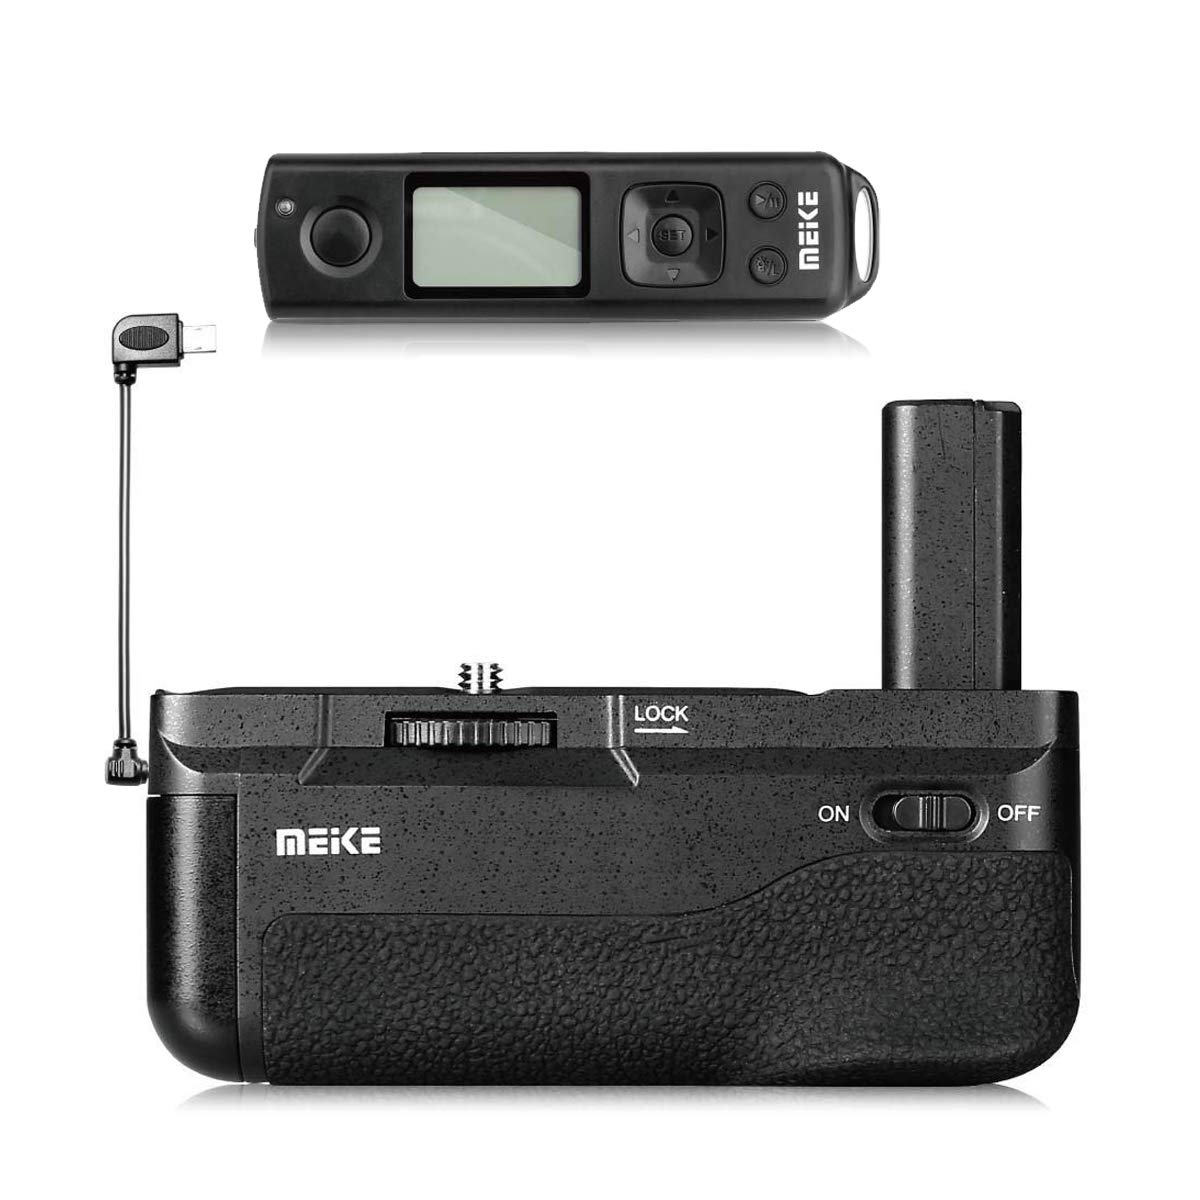 Meike A6300 Battery Grip, A6400 Battery Grip, A6000 Battery Grip, MK-A6300 Pro Built-in Battery Handle 2.4GHZ Remote Controller Up to 100M to Control Shooting for Sony A6000, A6300, A6400 Camera by Meike